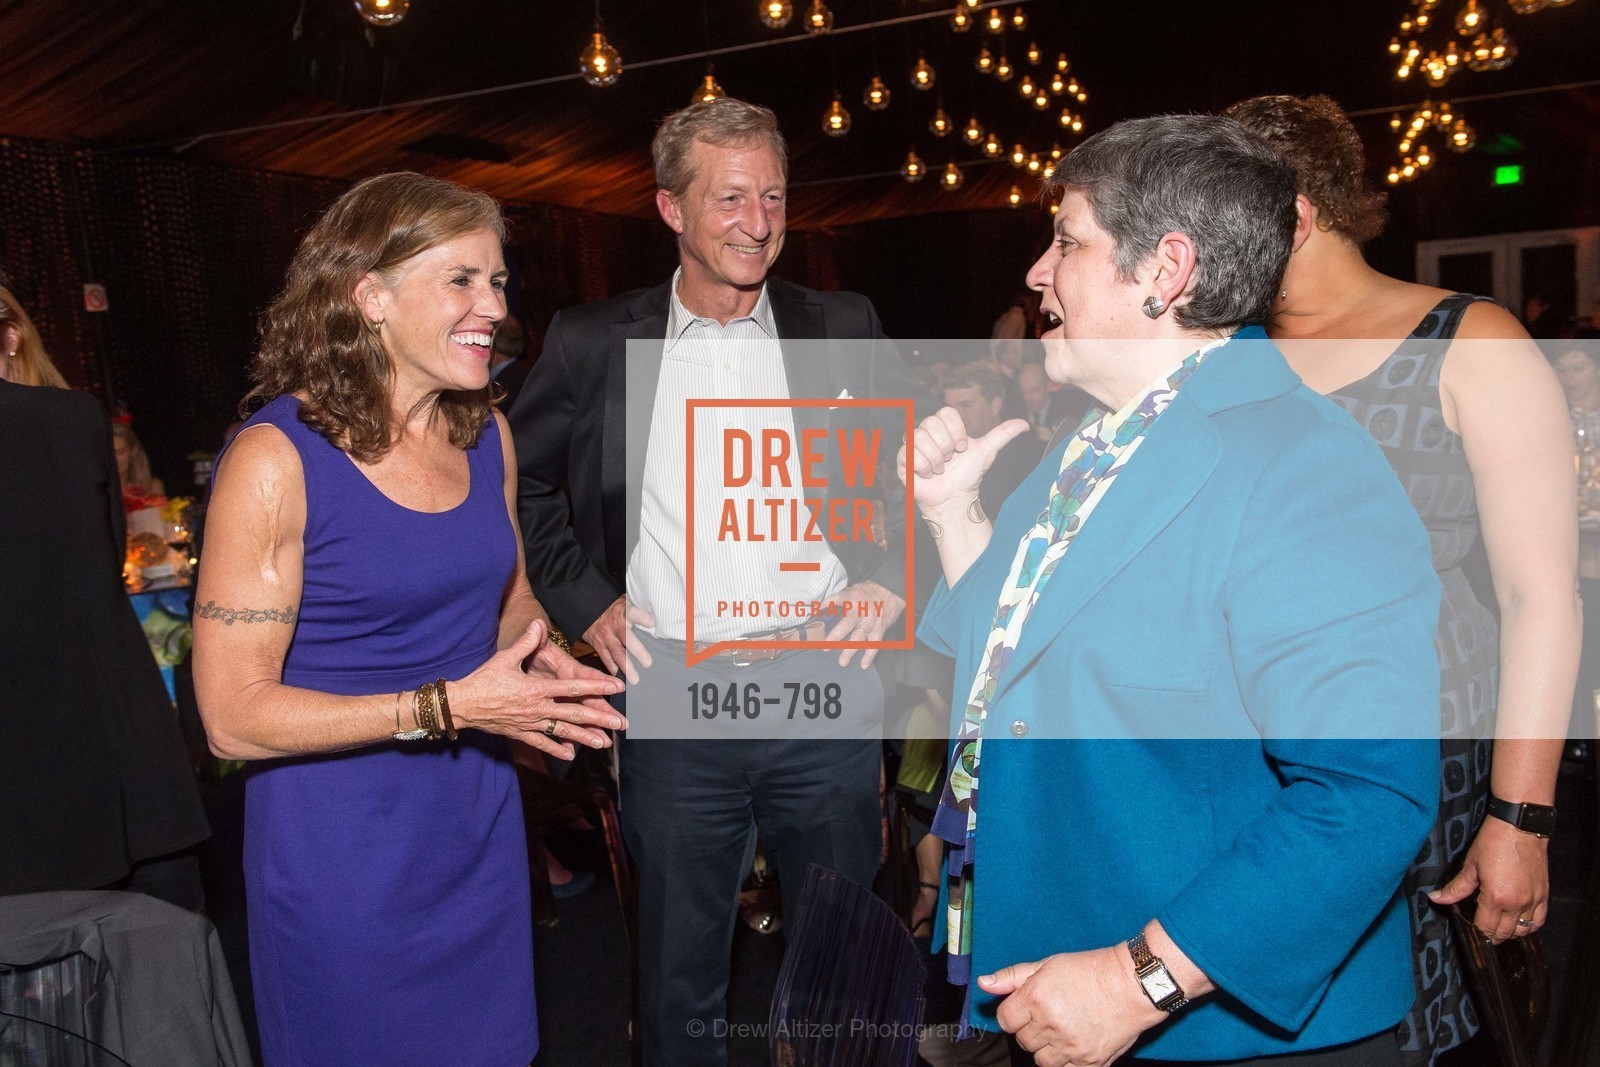 Kat Taylor, Tom Steyer, Janet Napolitano, CALIFORNIA ACADEMY OF SCIENCES - Big Bang Gala 2015, US, April 24th, 2015,Drew Altizer, Drew Altizer Photography, full-service agency, private events, San Francisco photographer, photographer california